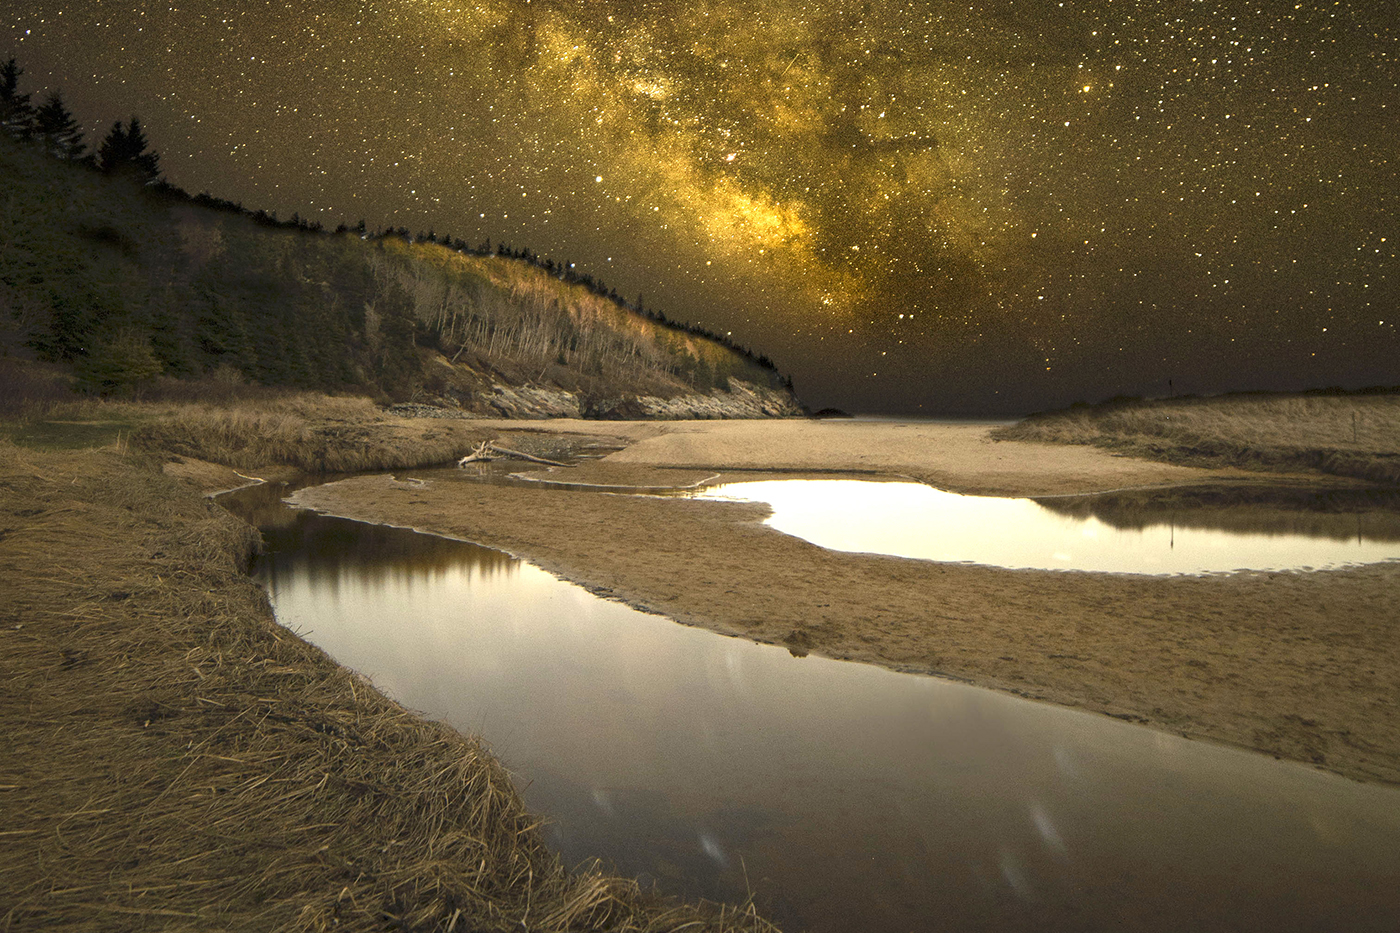 Sand Beach at night by Gerard Monteux